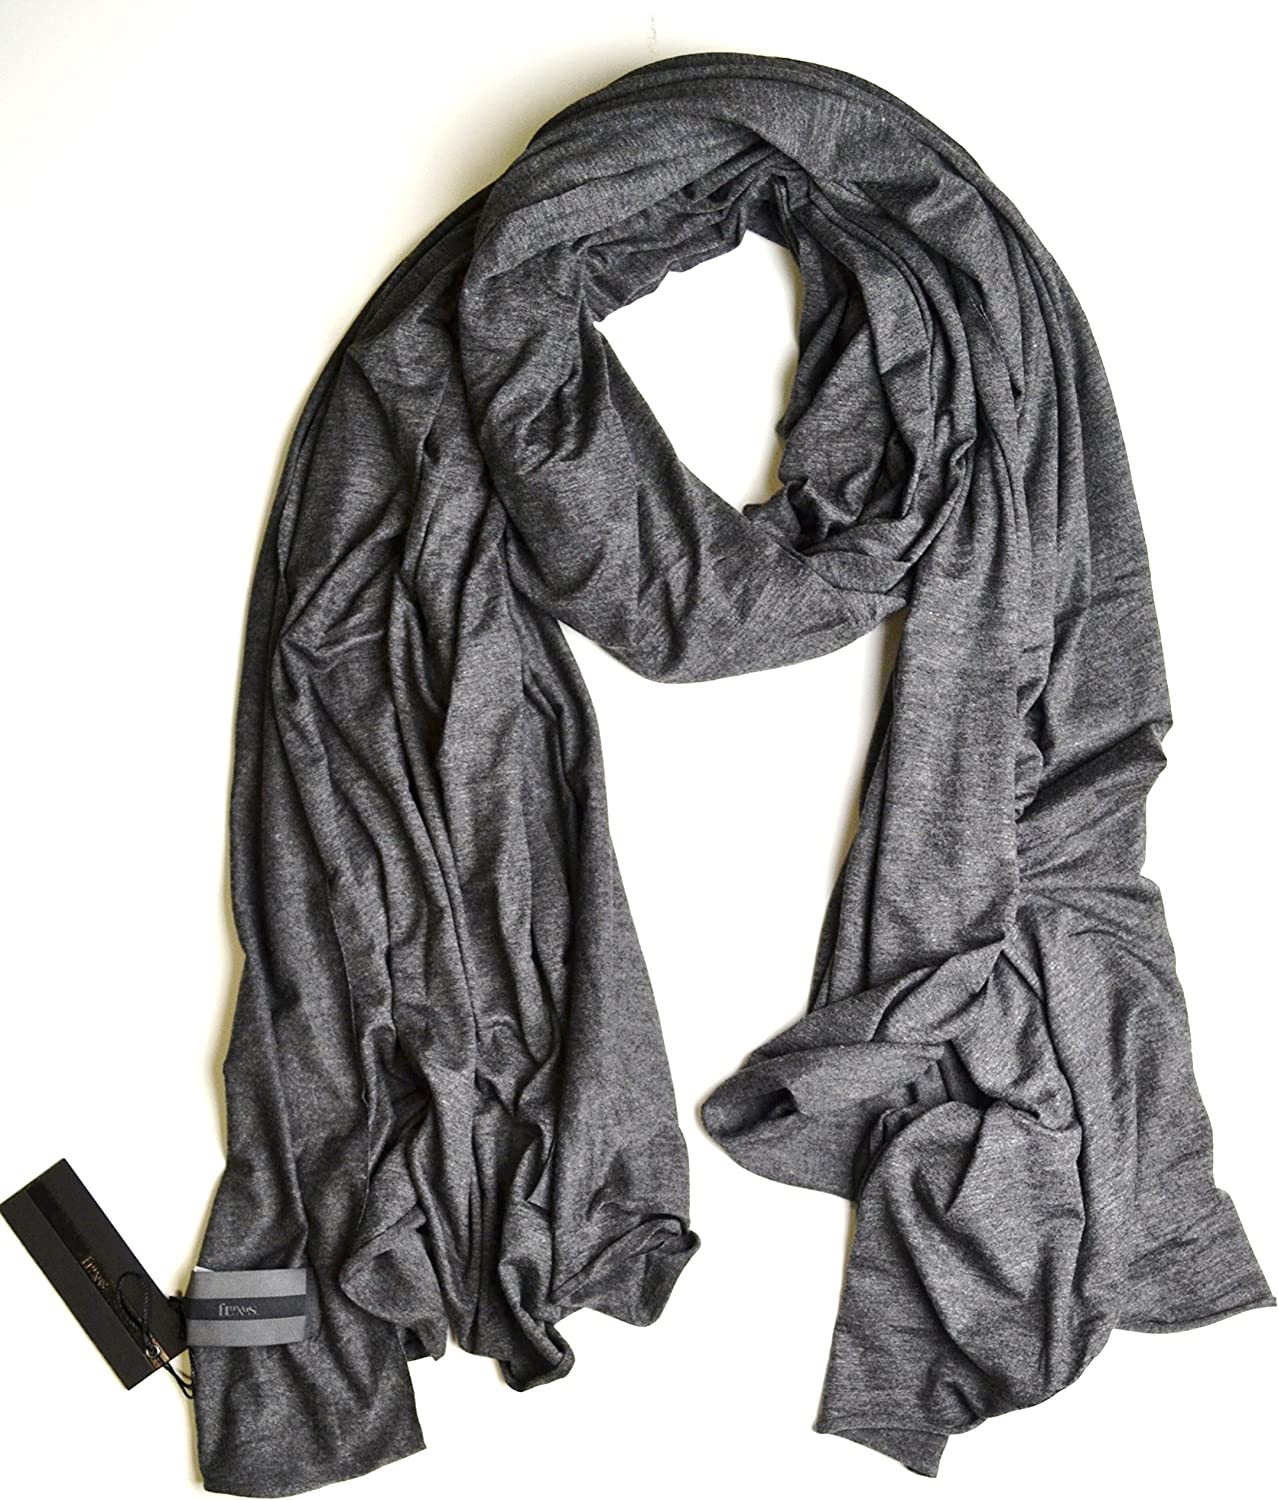 SALE $34.99 Fluxus Nomad Scarf Charcoal Grey Unisex, Oversized Cotton Wrap, Travel Wrap Made in USA